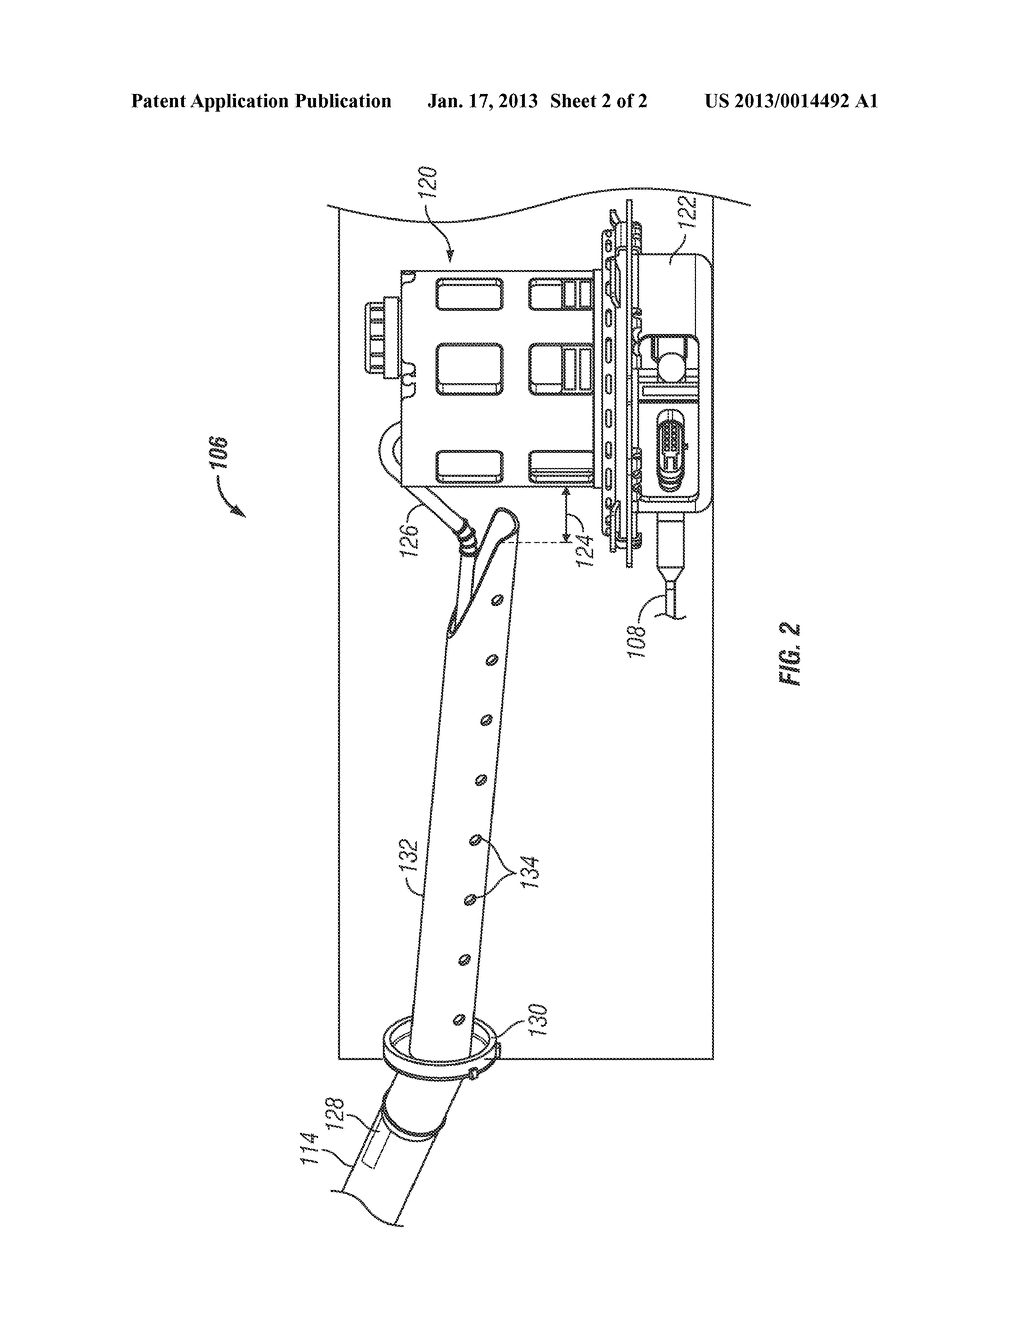 EMISSION CONTROL SYSTEM FOR A VEHICLEAANM BASISTA; JEFFREY S.AACI MILFORDAAST MIAACO USAAGP BASISTA; JEFFREY S. MILFORD MI USAANM YACCARINO; PHILIP A.AACI TROYAAST MIAACO USAAGP YACCARINO; PHILIP A. TROY MI US - diagram, schematic, and image 03